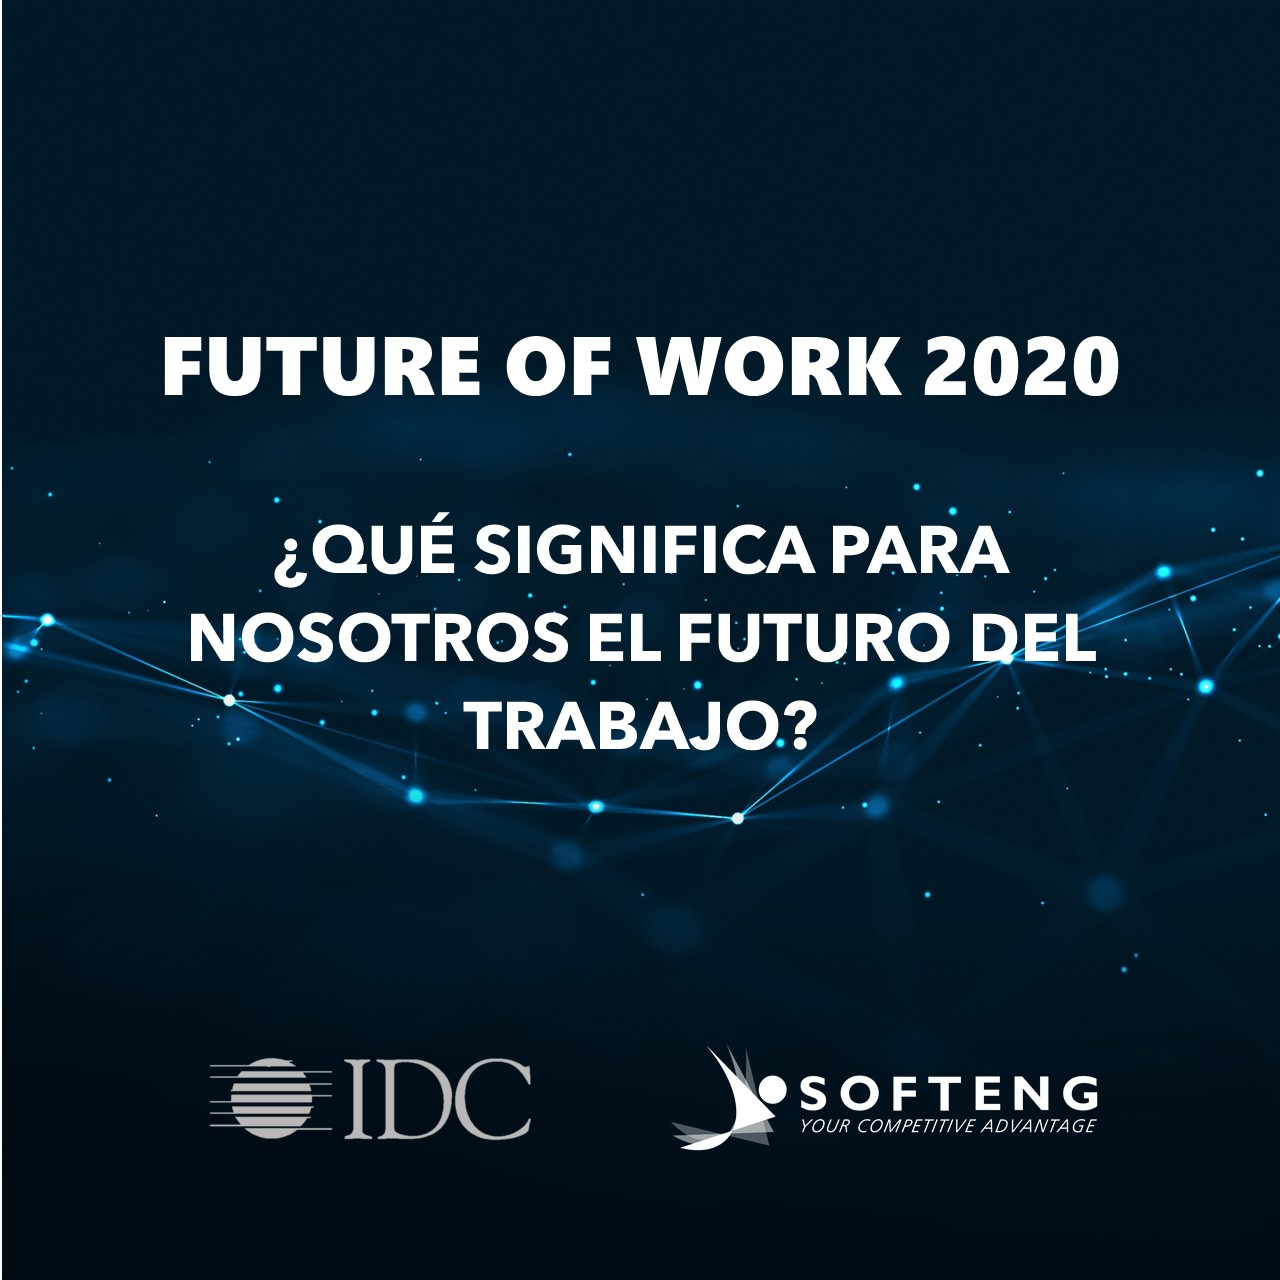 Softeng will participate in the Future of Work 2020